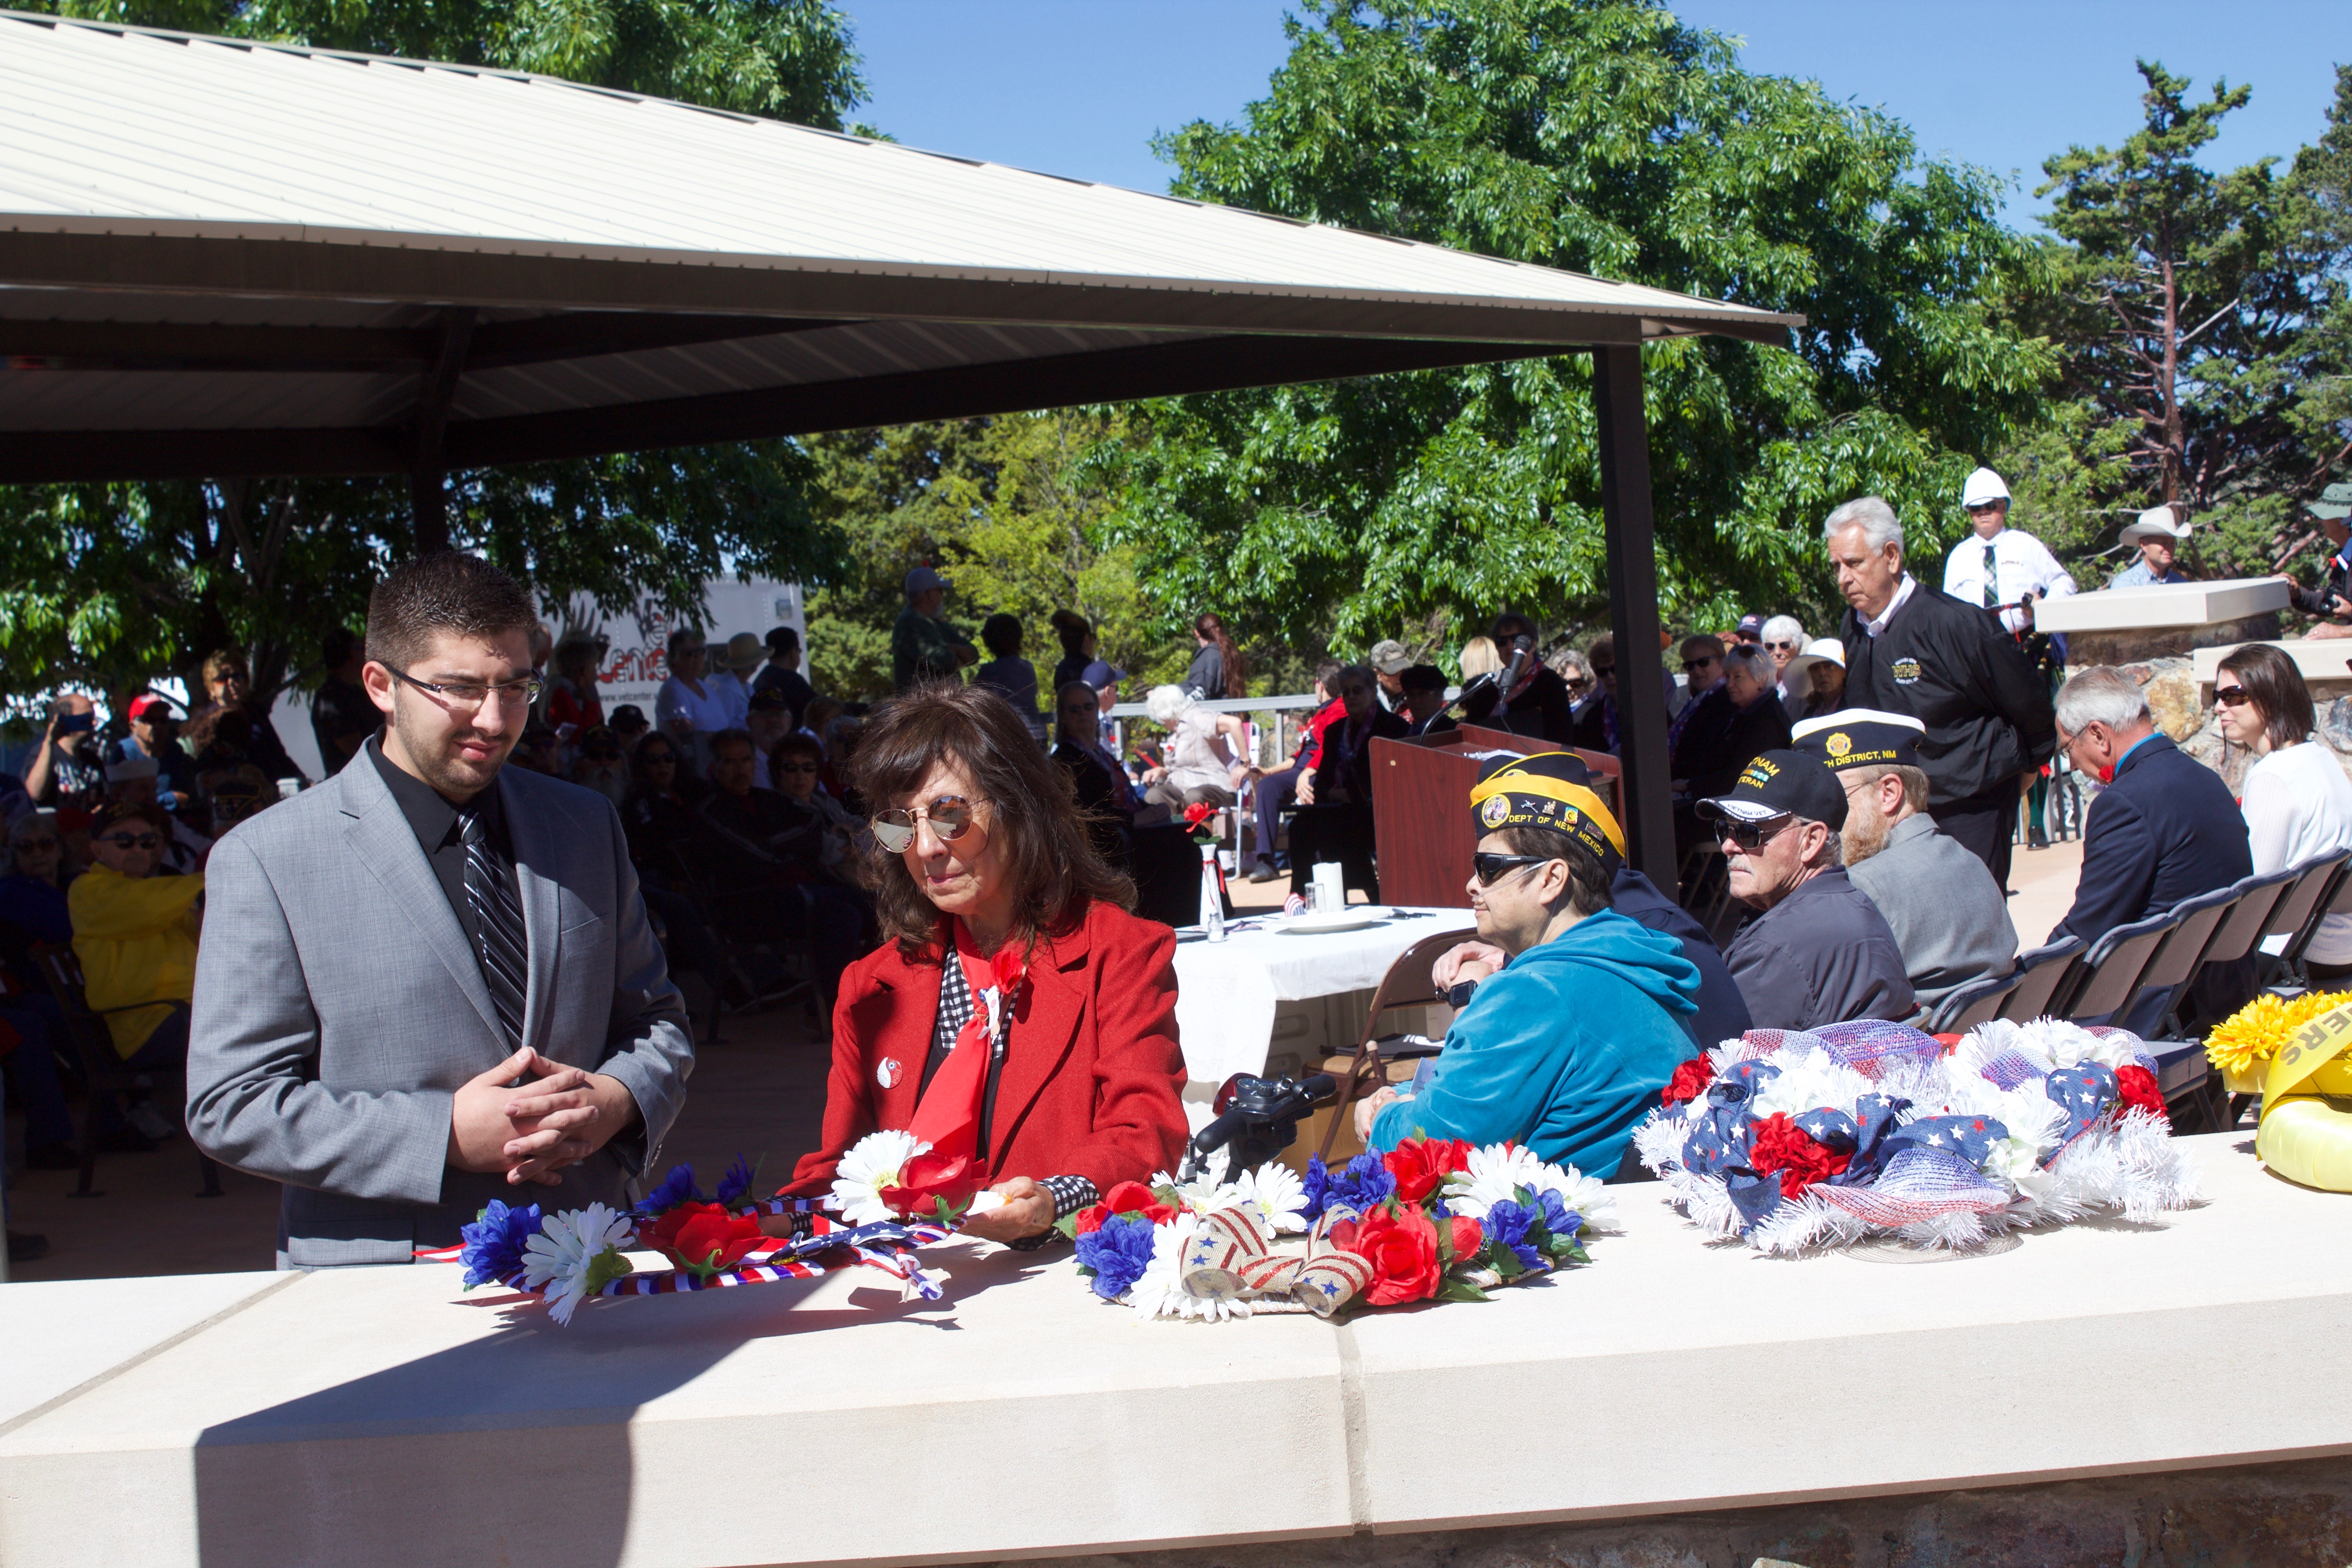 (Press Staff Photo by C.P. Thompson) Lena Holguin puts a wreath down while Luis Terrazas stands next to her during the Memorial Day ceremony at the Fort Bayard National Cemetery on Monday.